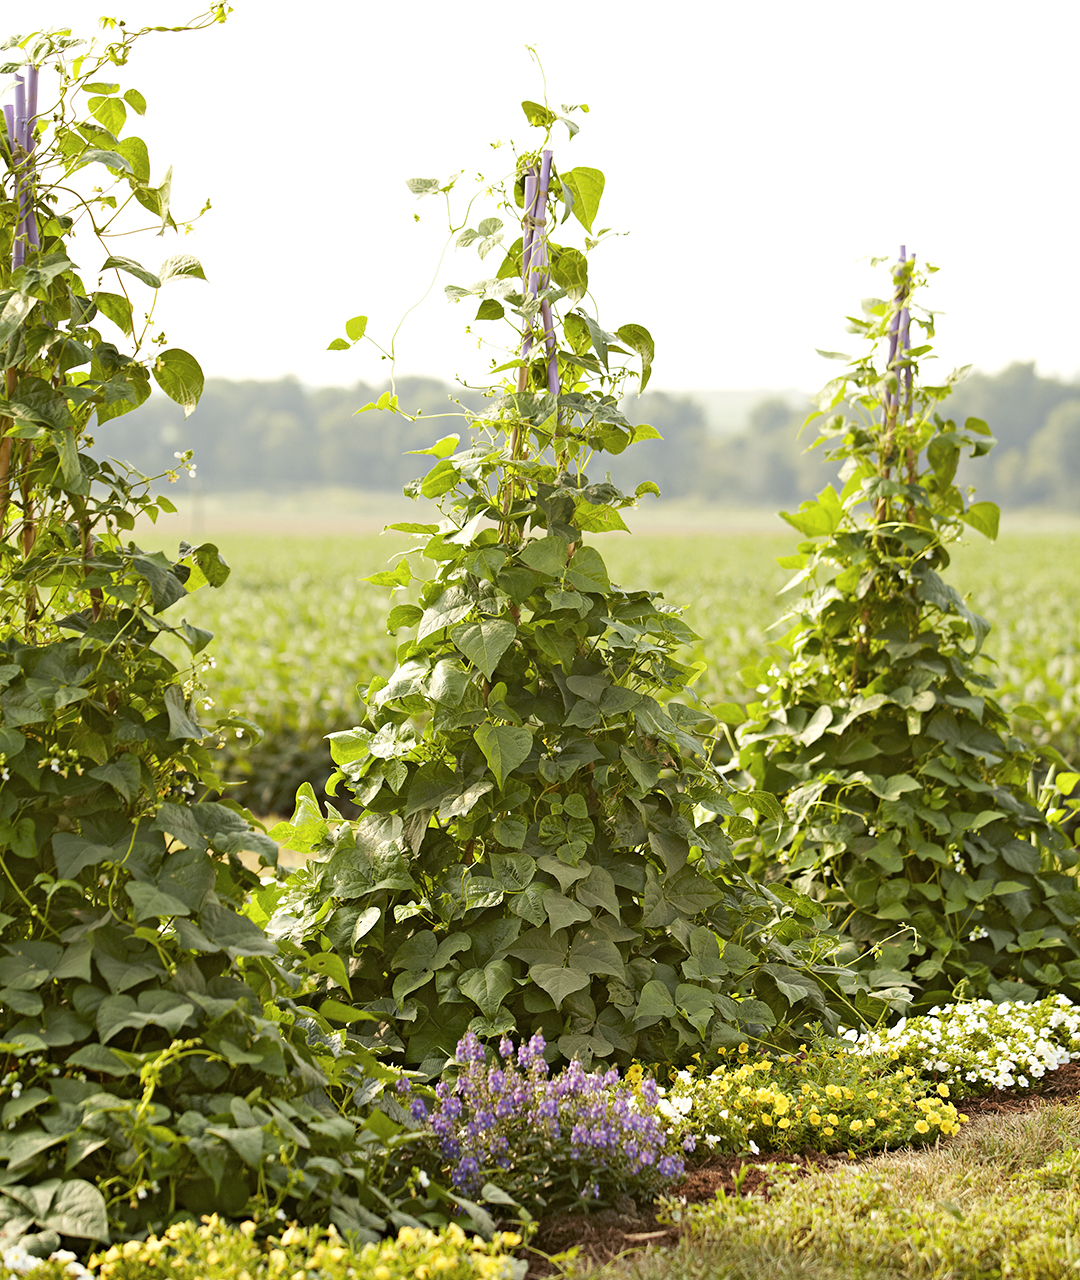 pole beans on trellis in field